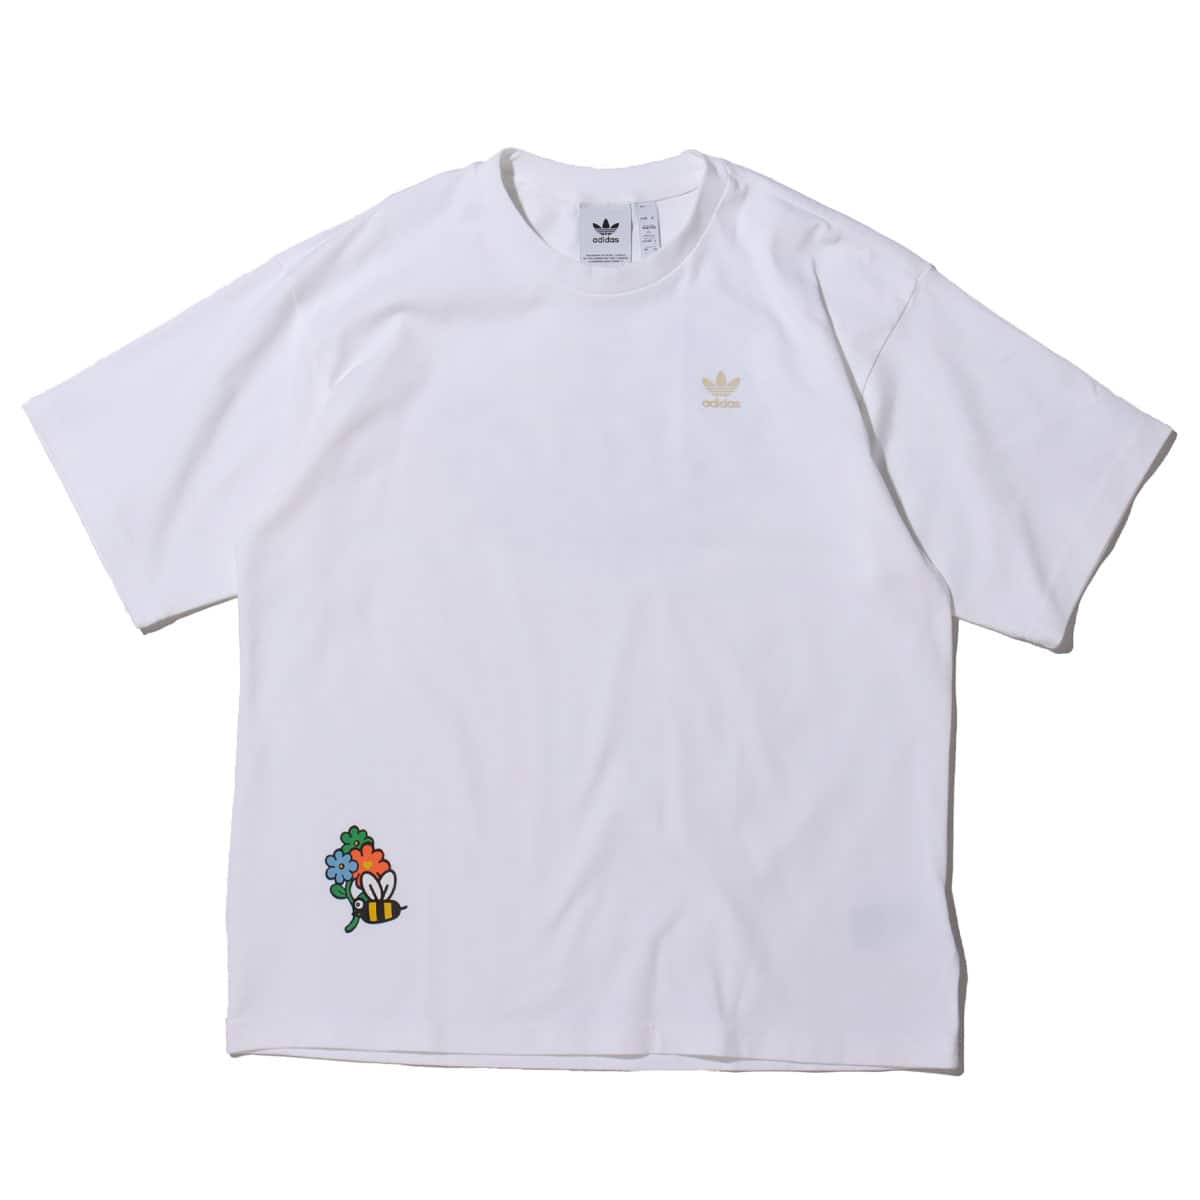 adidas Tee SS WHITE 21SS-S_photo_large